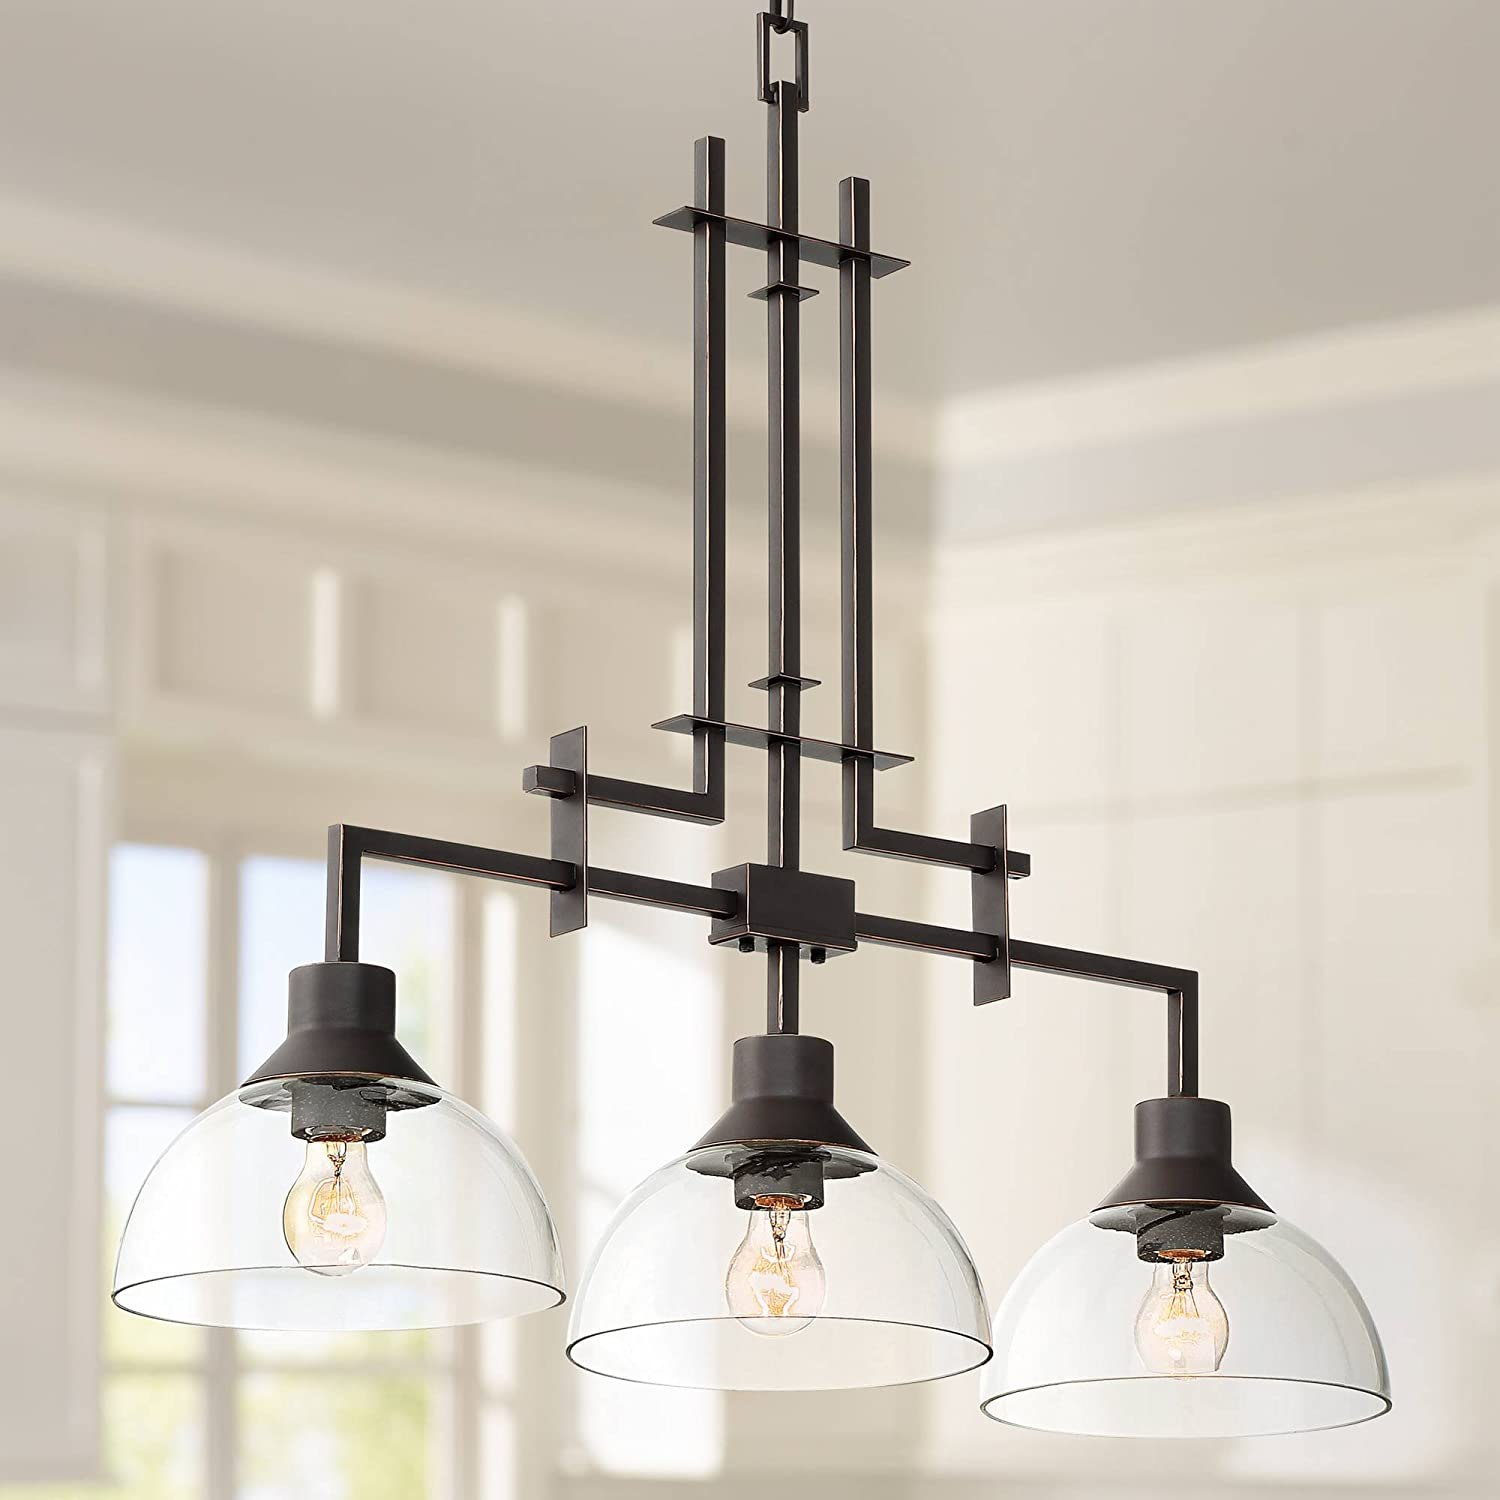 Metro 32 W Bronze and Clear Glass 3-Light Island Chandelier – Franklin Iron Works